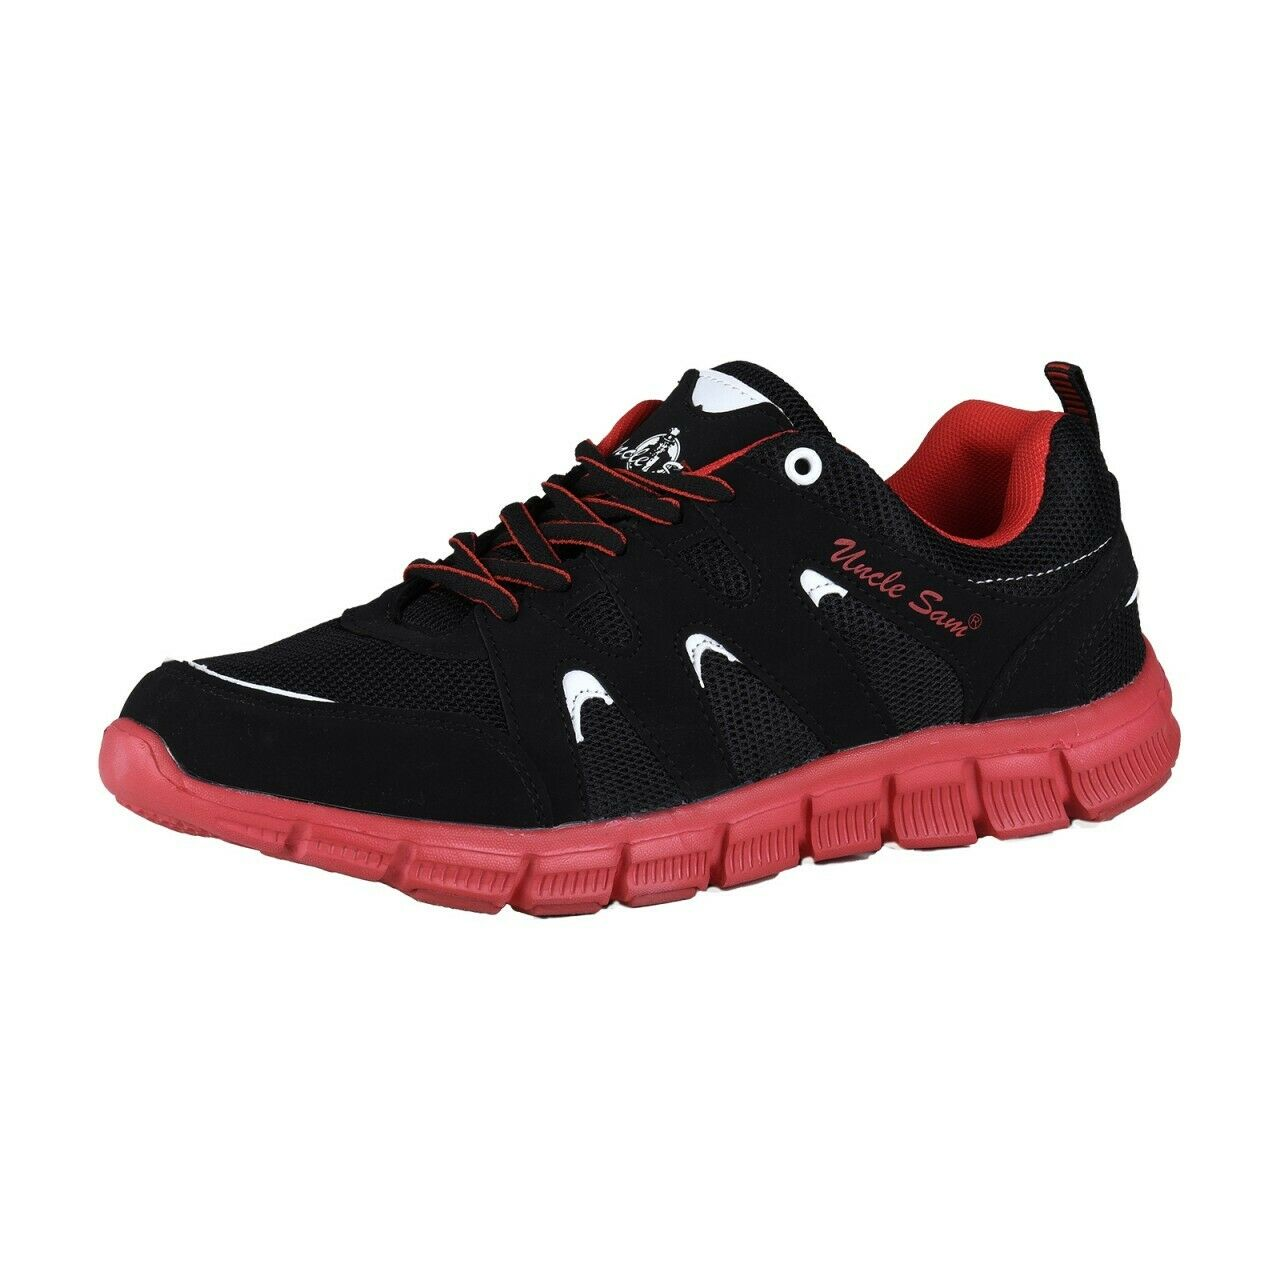 Uncle Sam Men's Lightweight Running shoes Sneakers Trainers Jogging Black Red